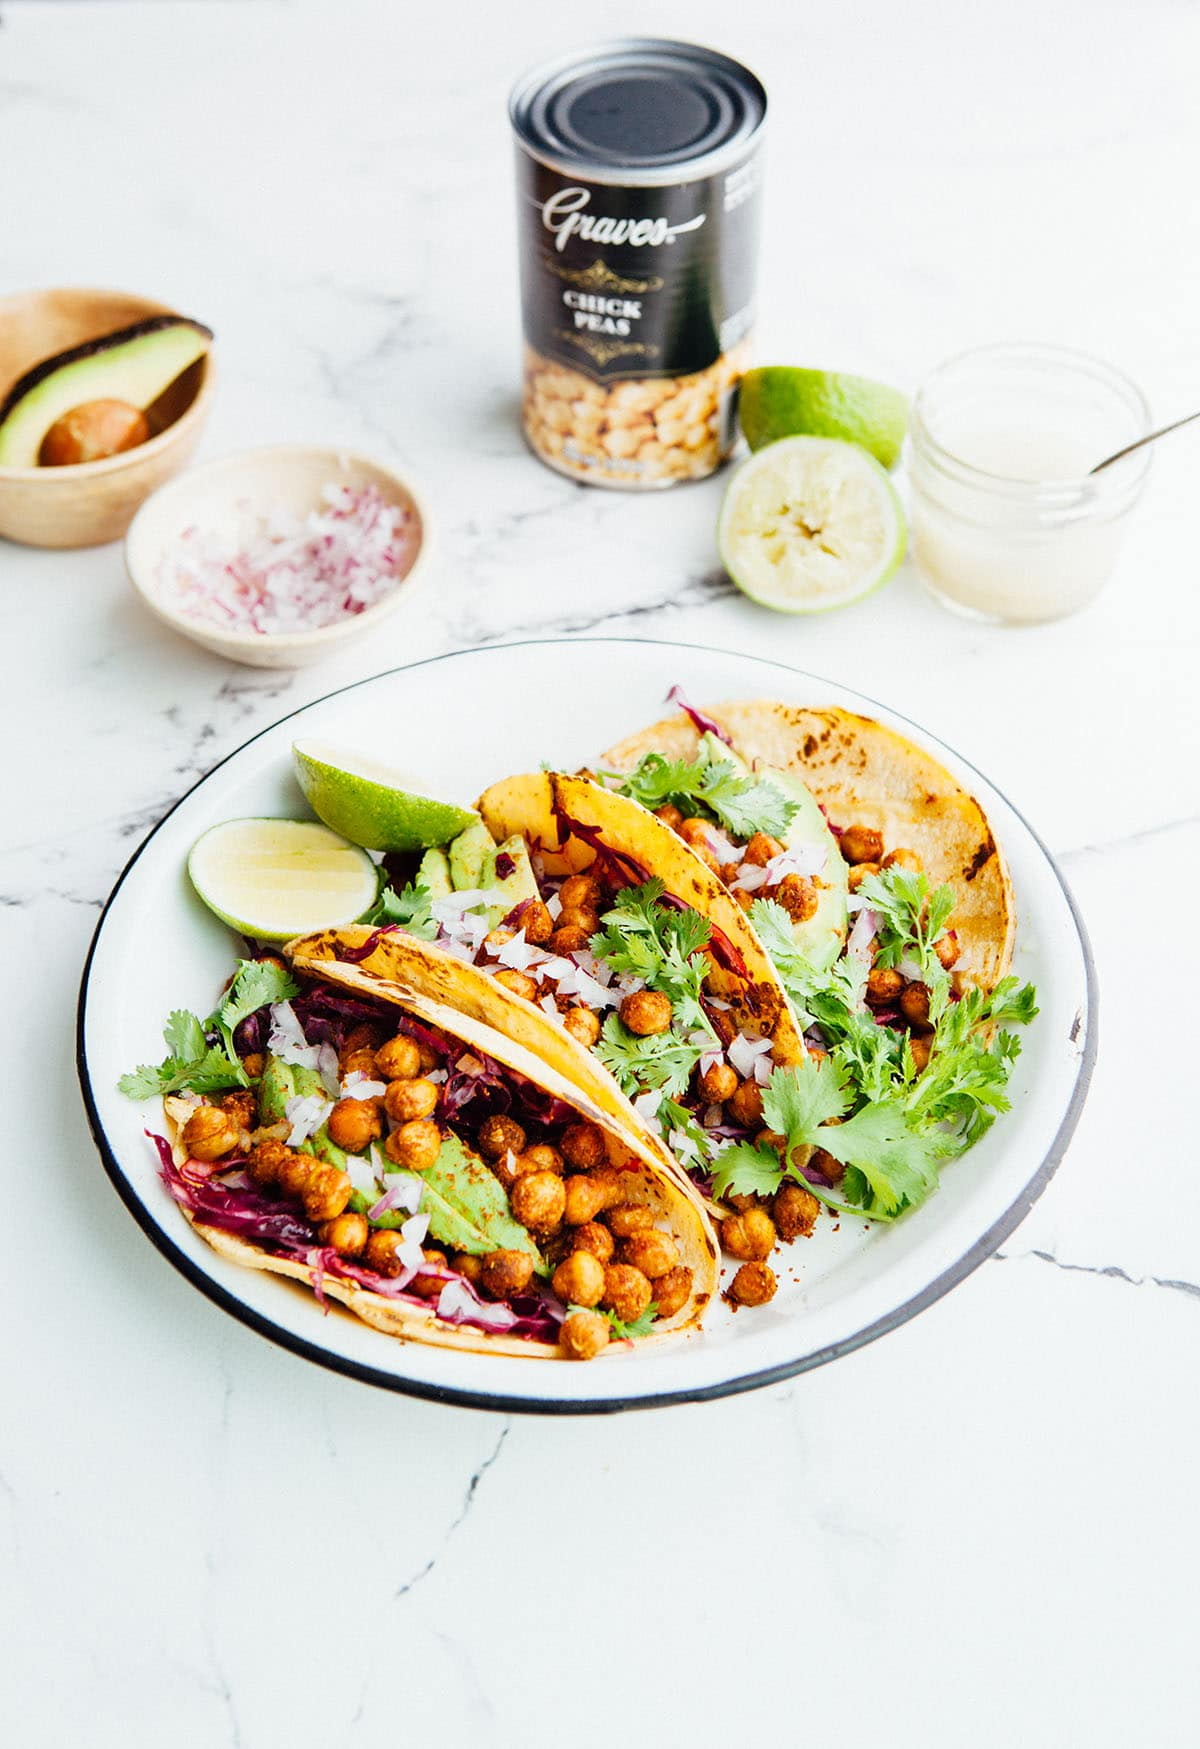 Three roasted chickpea tacos standing upright in a white round enamel plate with a can of Graves chickpeas in the background.